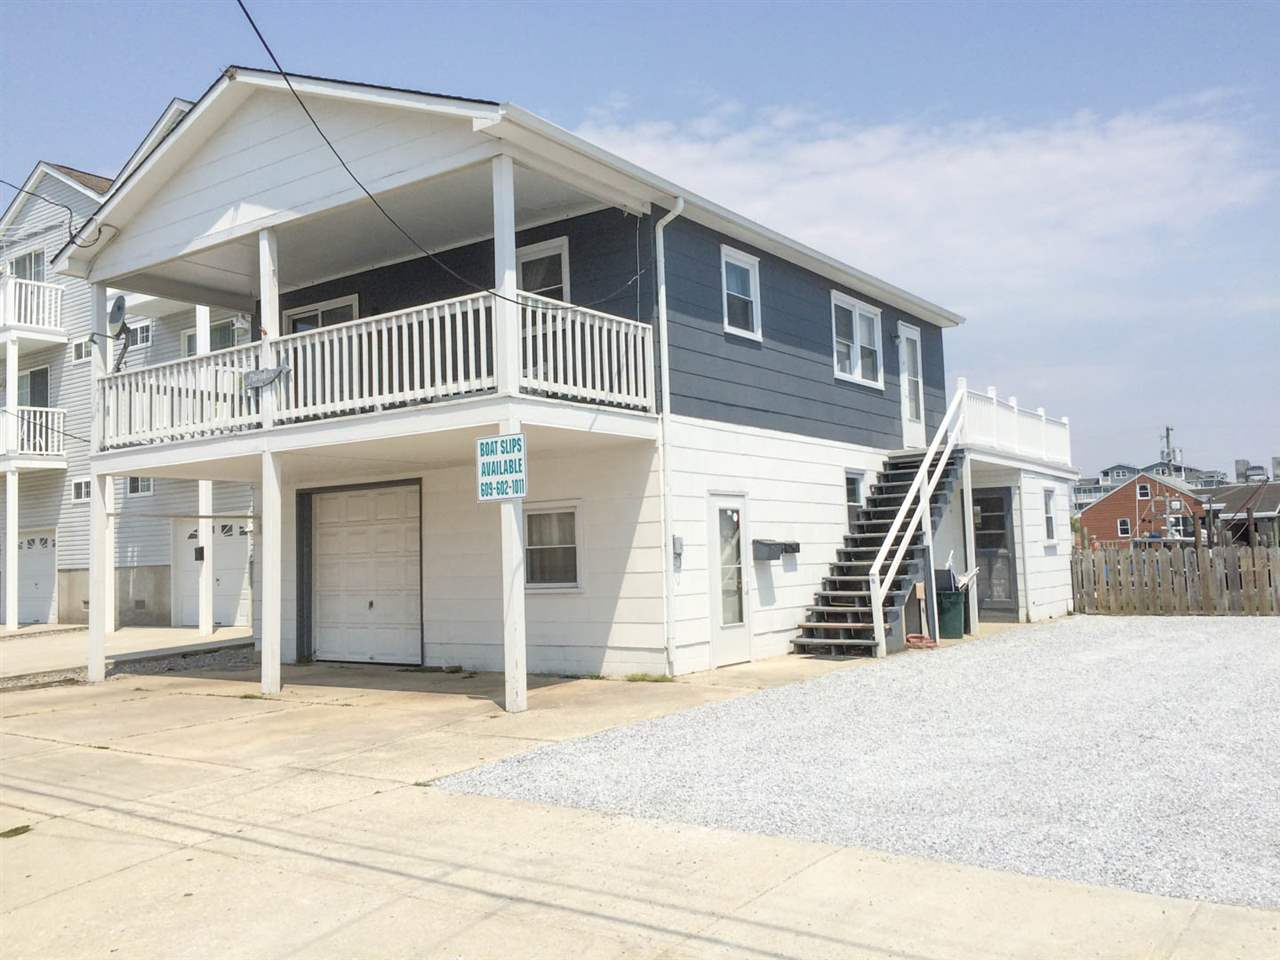 333 43rd, Sea Isle City, NJ 08243